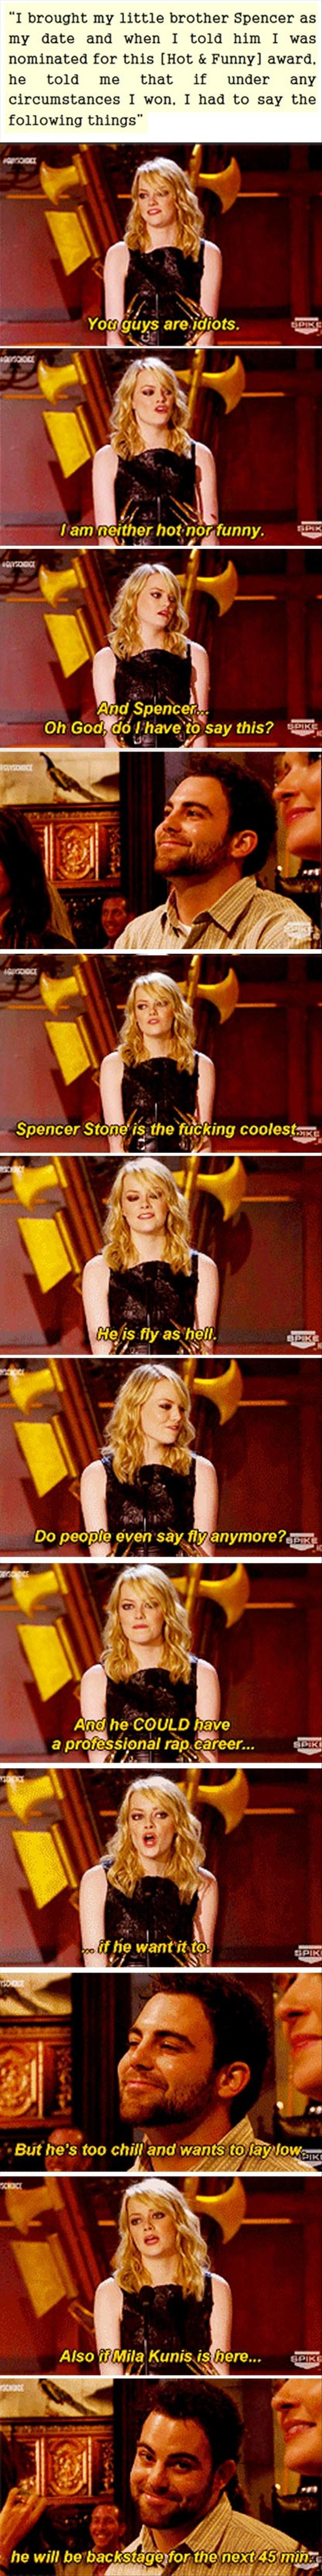 emma stone speach